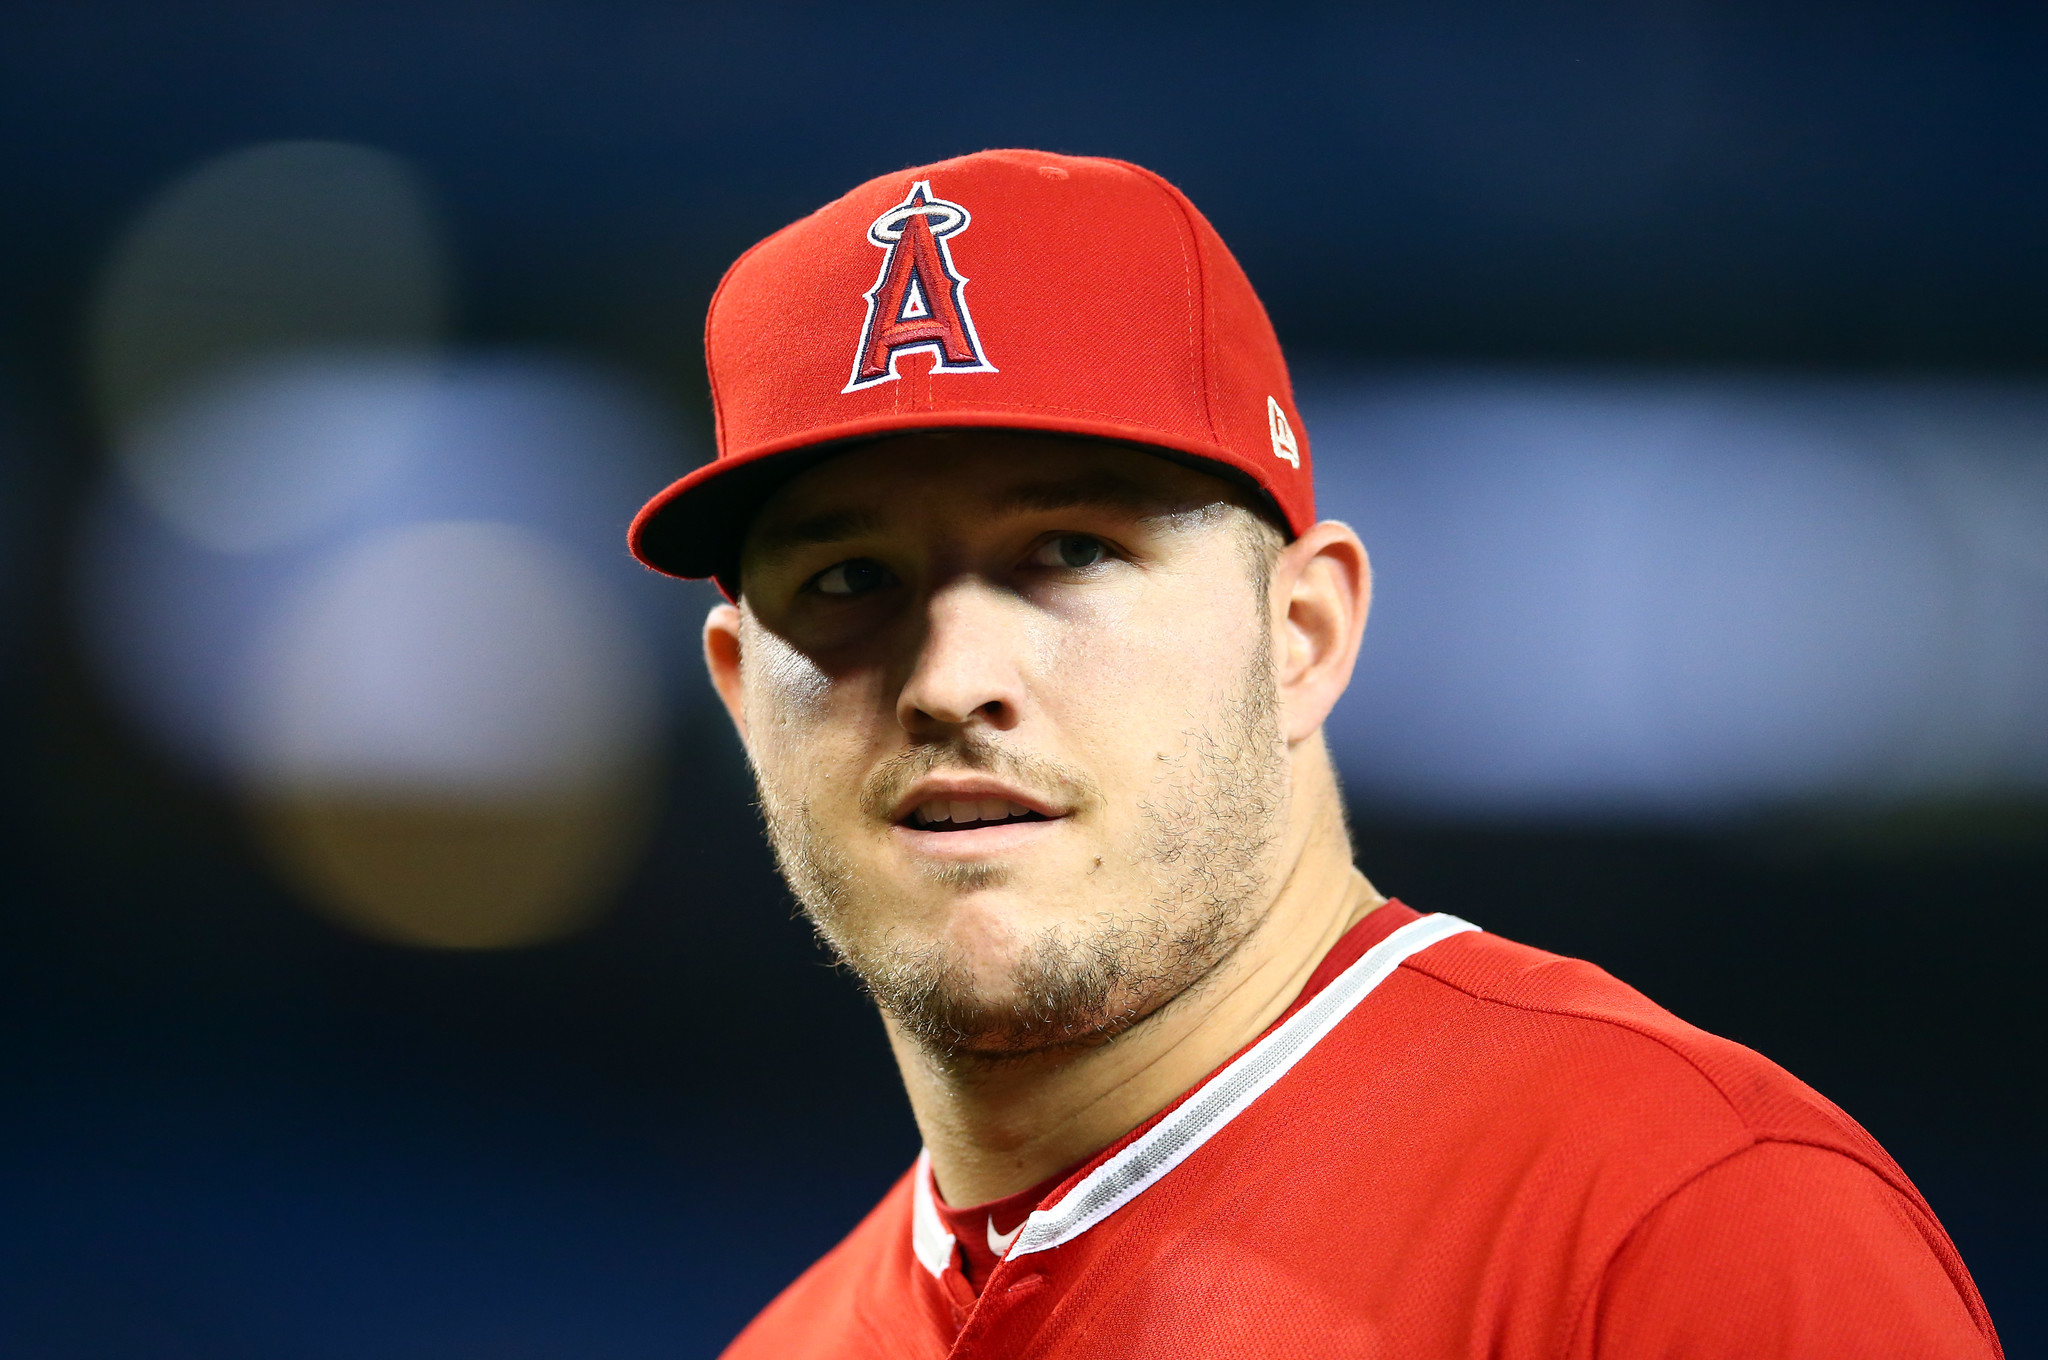 MLB and MLBPA clarify banned substance exemptions after Mike Trout HGH rumor